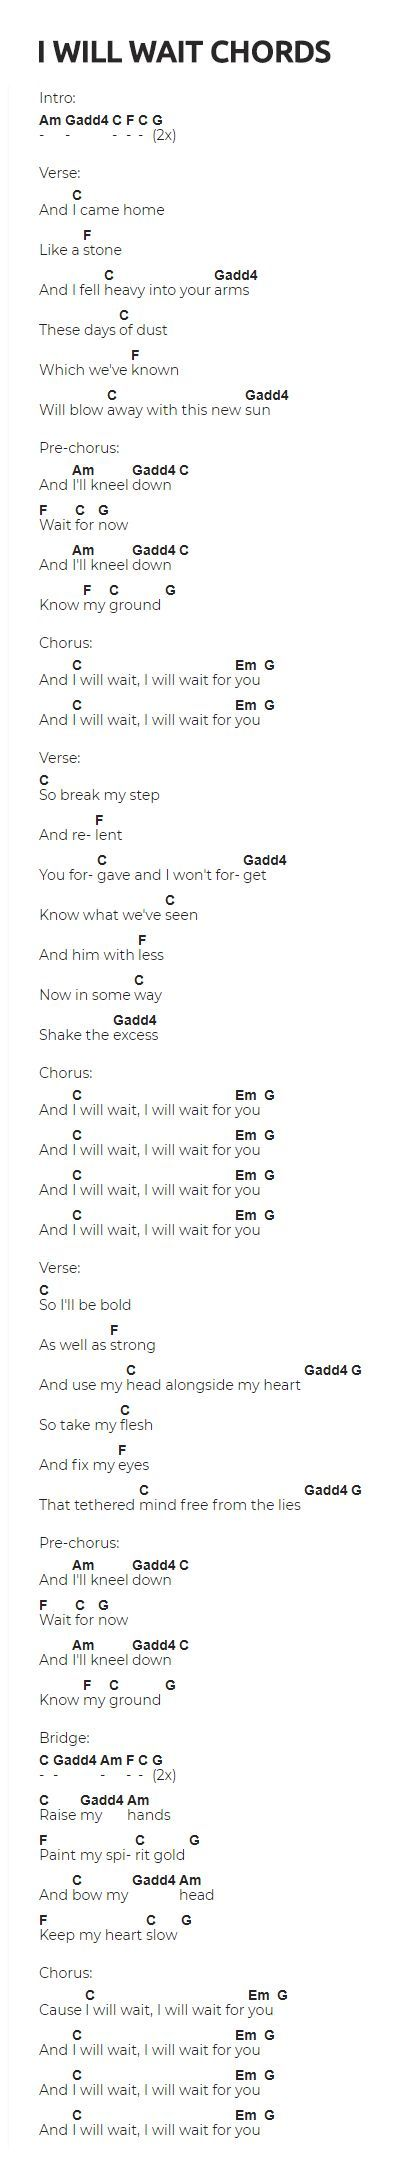 I Will Wait Guitar Chords By Mumford And Sons Visit The Website For